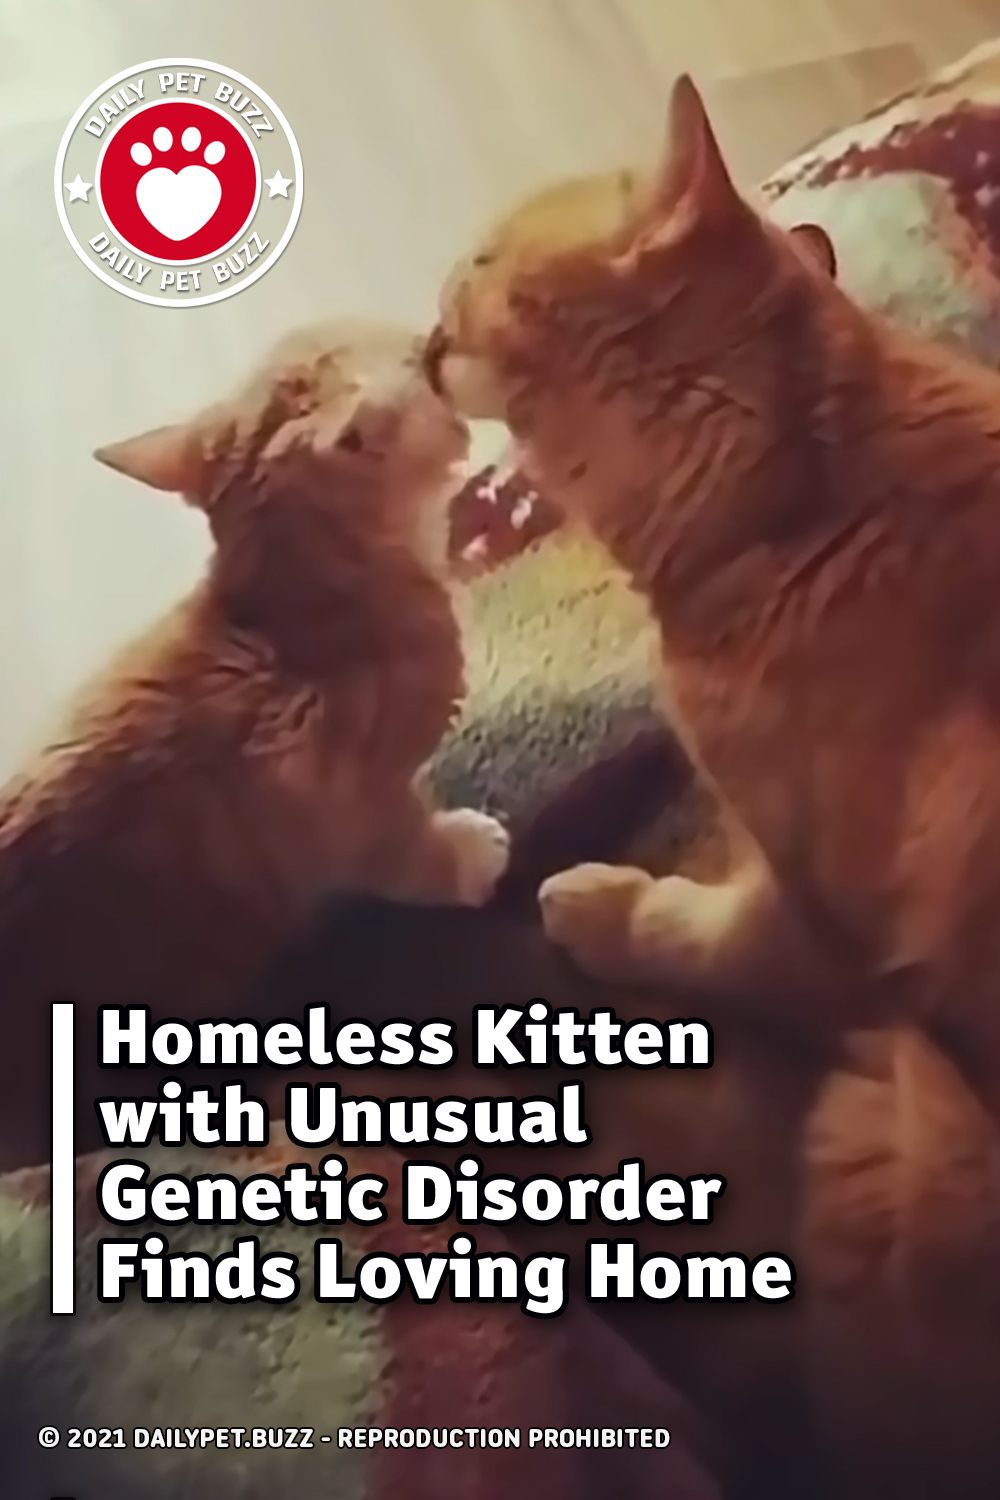 Homeless Kitten with Unusual Genetic Disorder Finds Loving Home